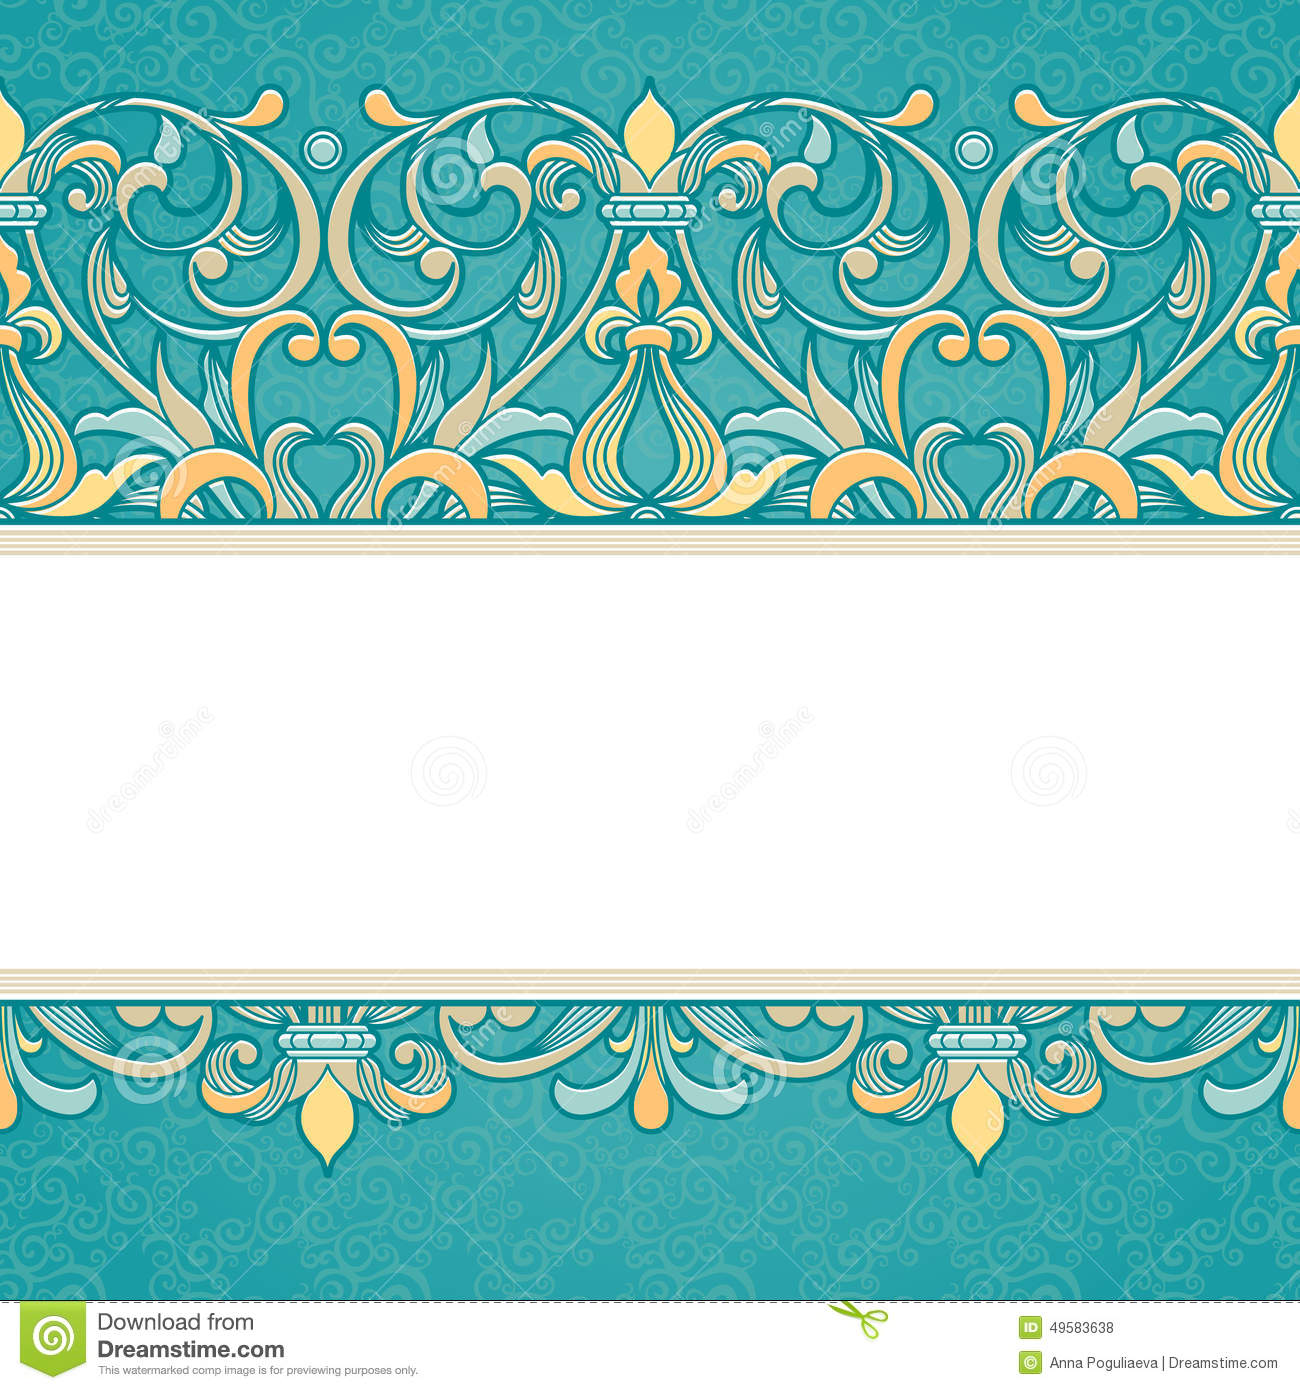 Vector Floral Border In Victorian Style. Stock Vector - Image: 49583638